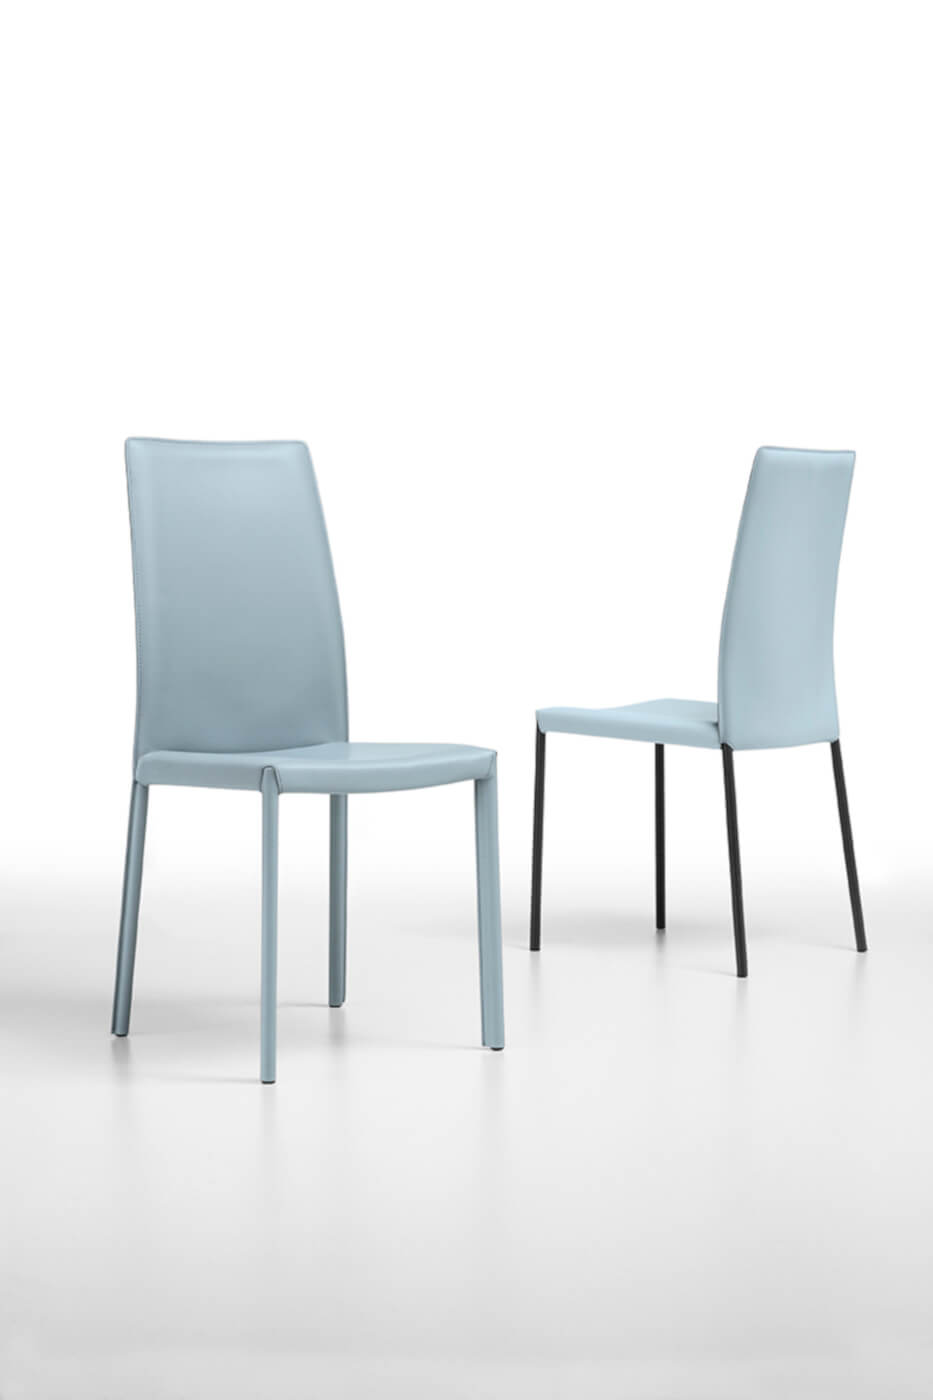 Nuvola chair with high back in light blue hide